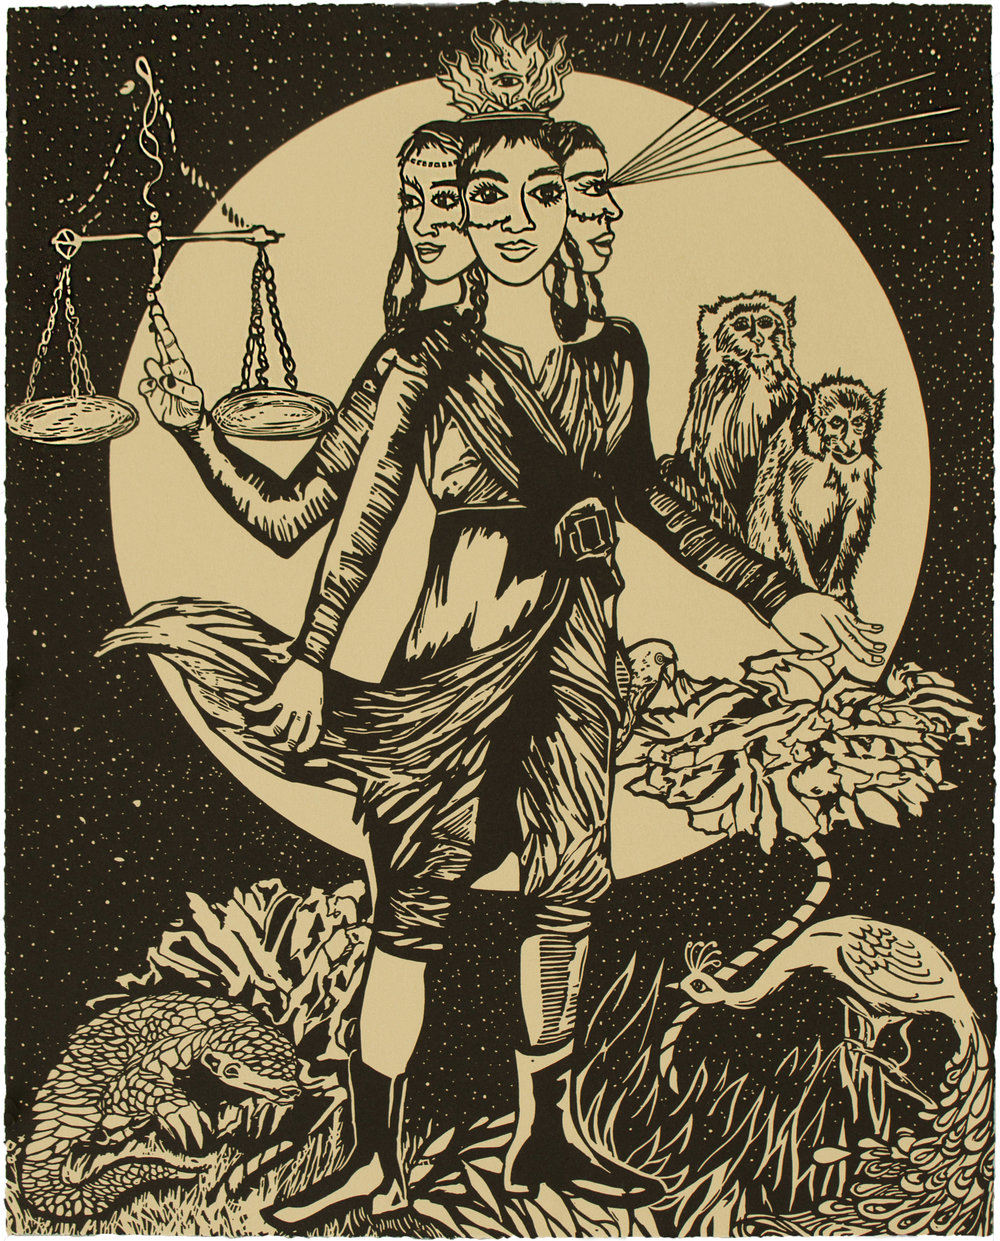 Chitra Ganesh,  Justice is Virtue , 2018, Linocut BFK Rives Tan, 280gsm, Edition of 35, 20 1/ 8 x 16 1/8 inches (51.1 x 41 cm)